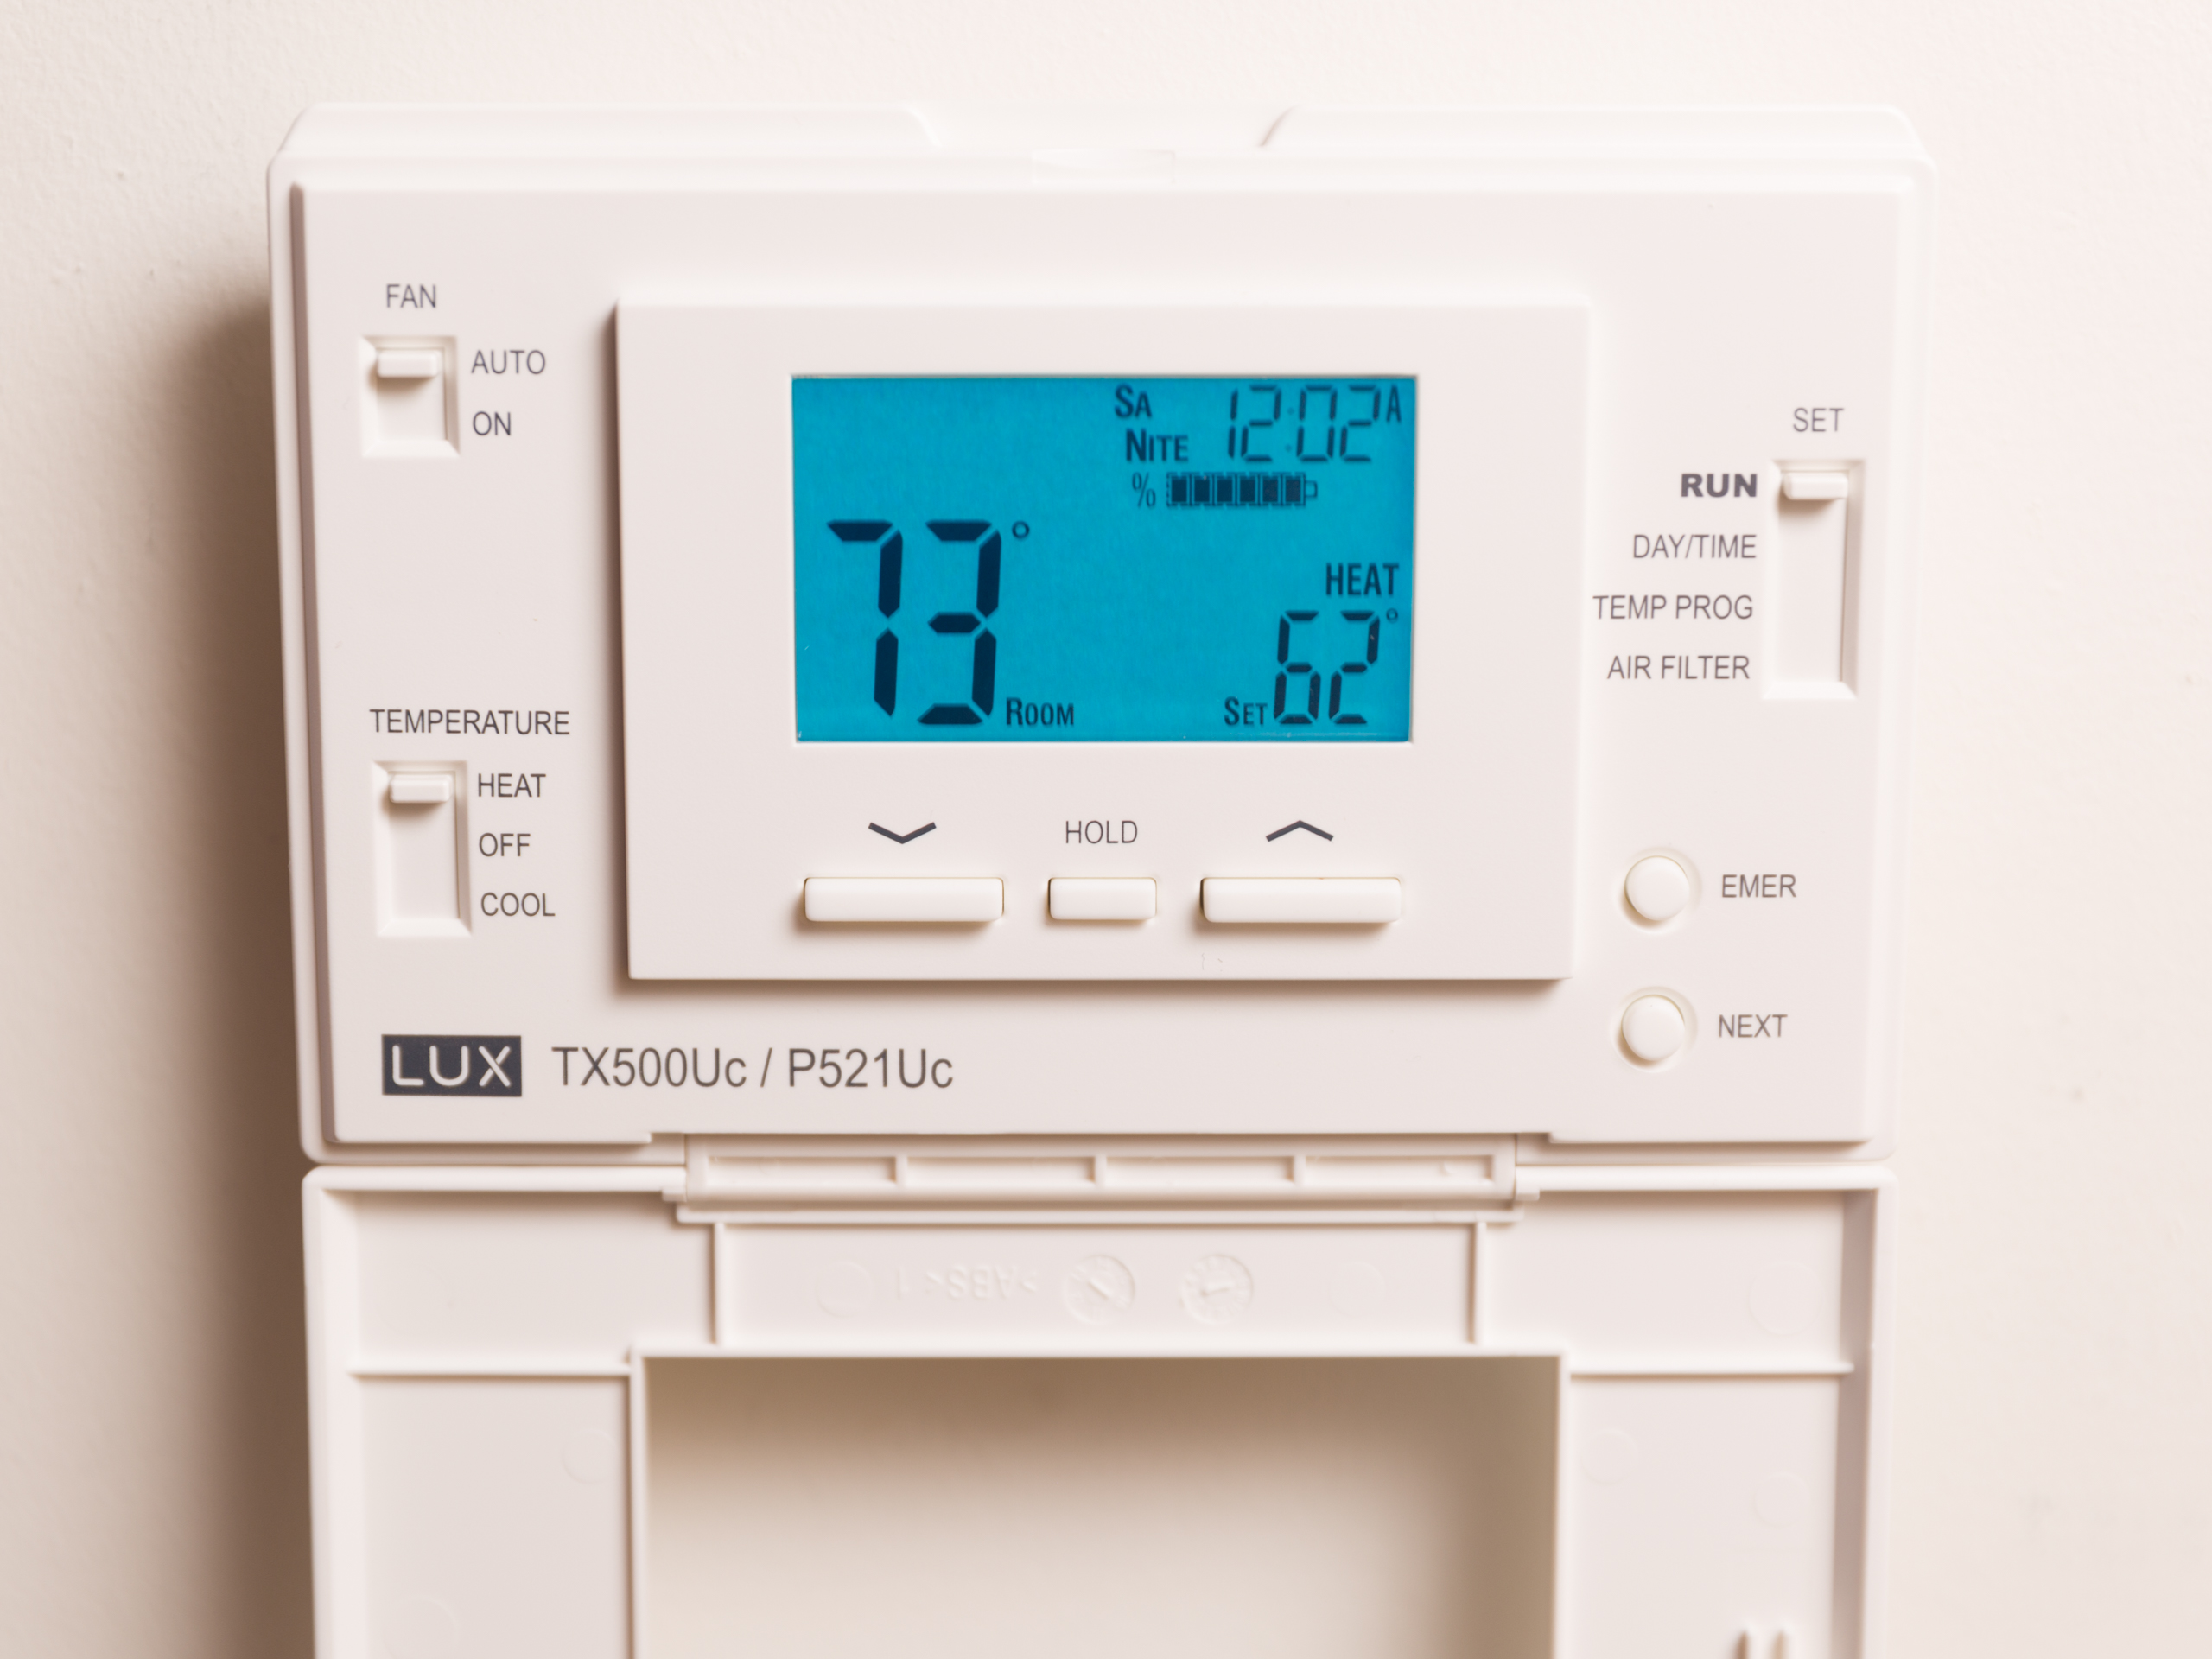 emerson-17f8-151-thermostat-product-photos-1.jpg